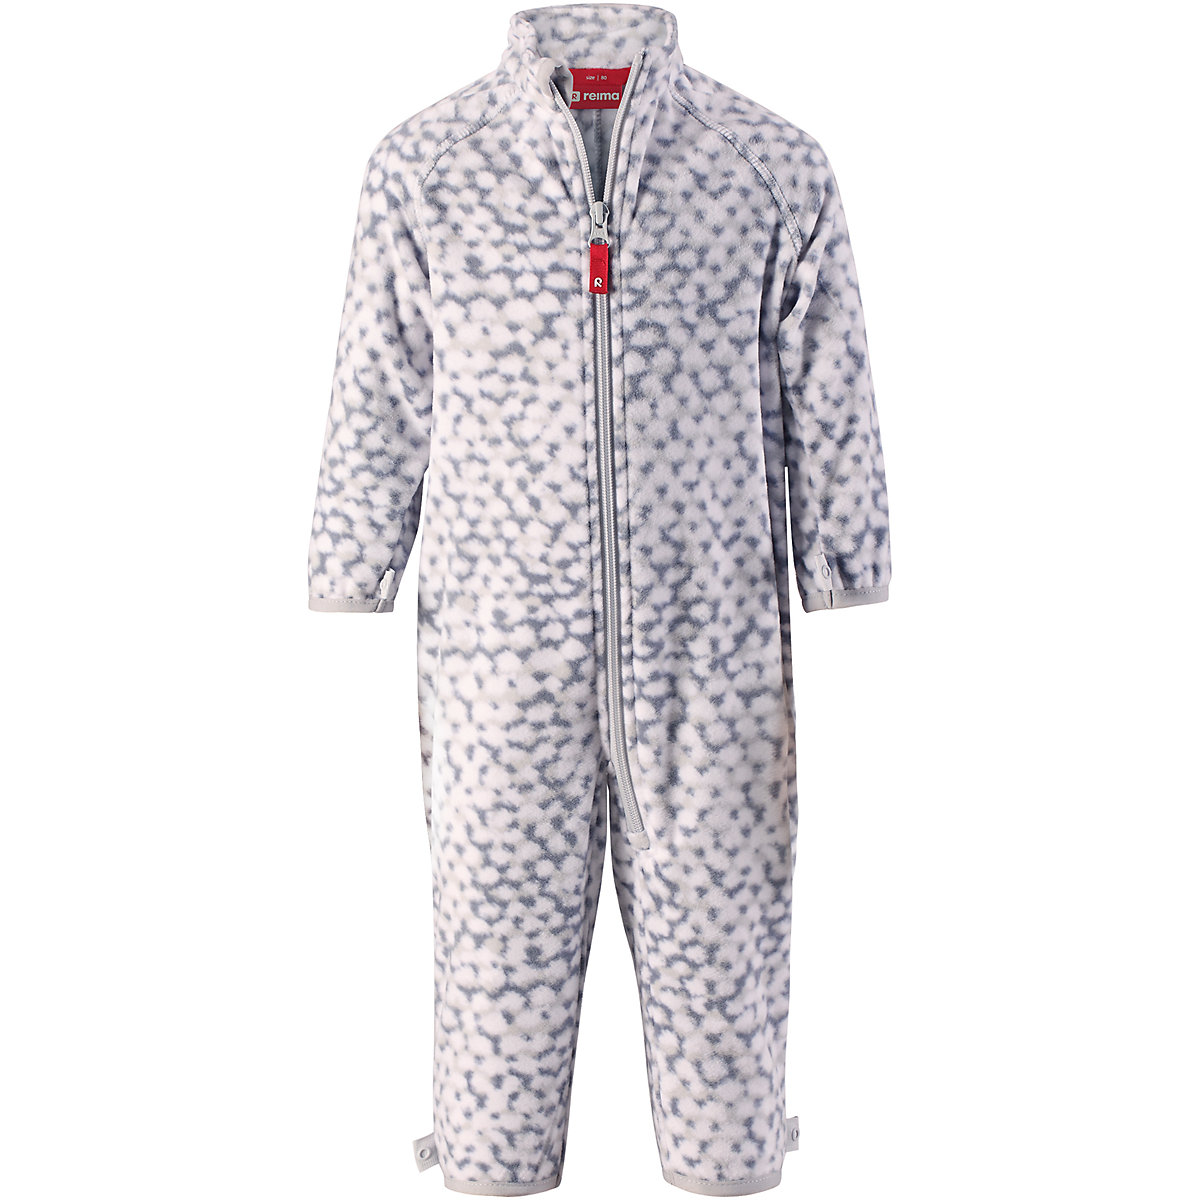 REIMA Overalls  8689660 for boys and girls polyester winter reima overalls 7628255 for boys and girls polyester winter